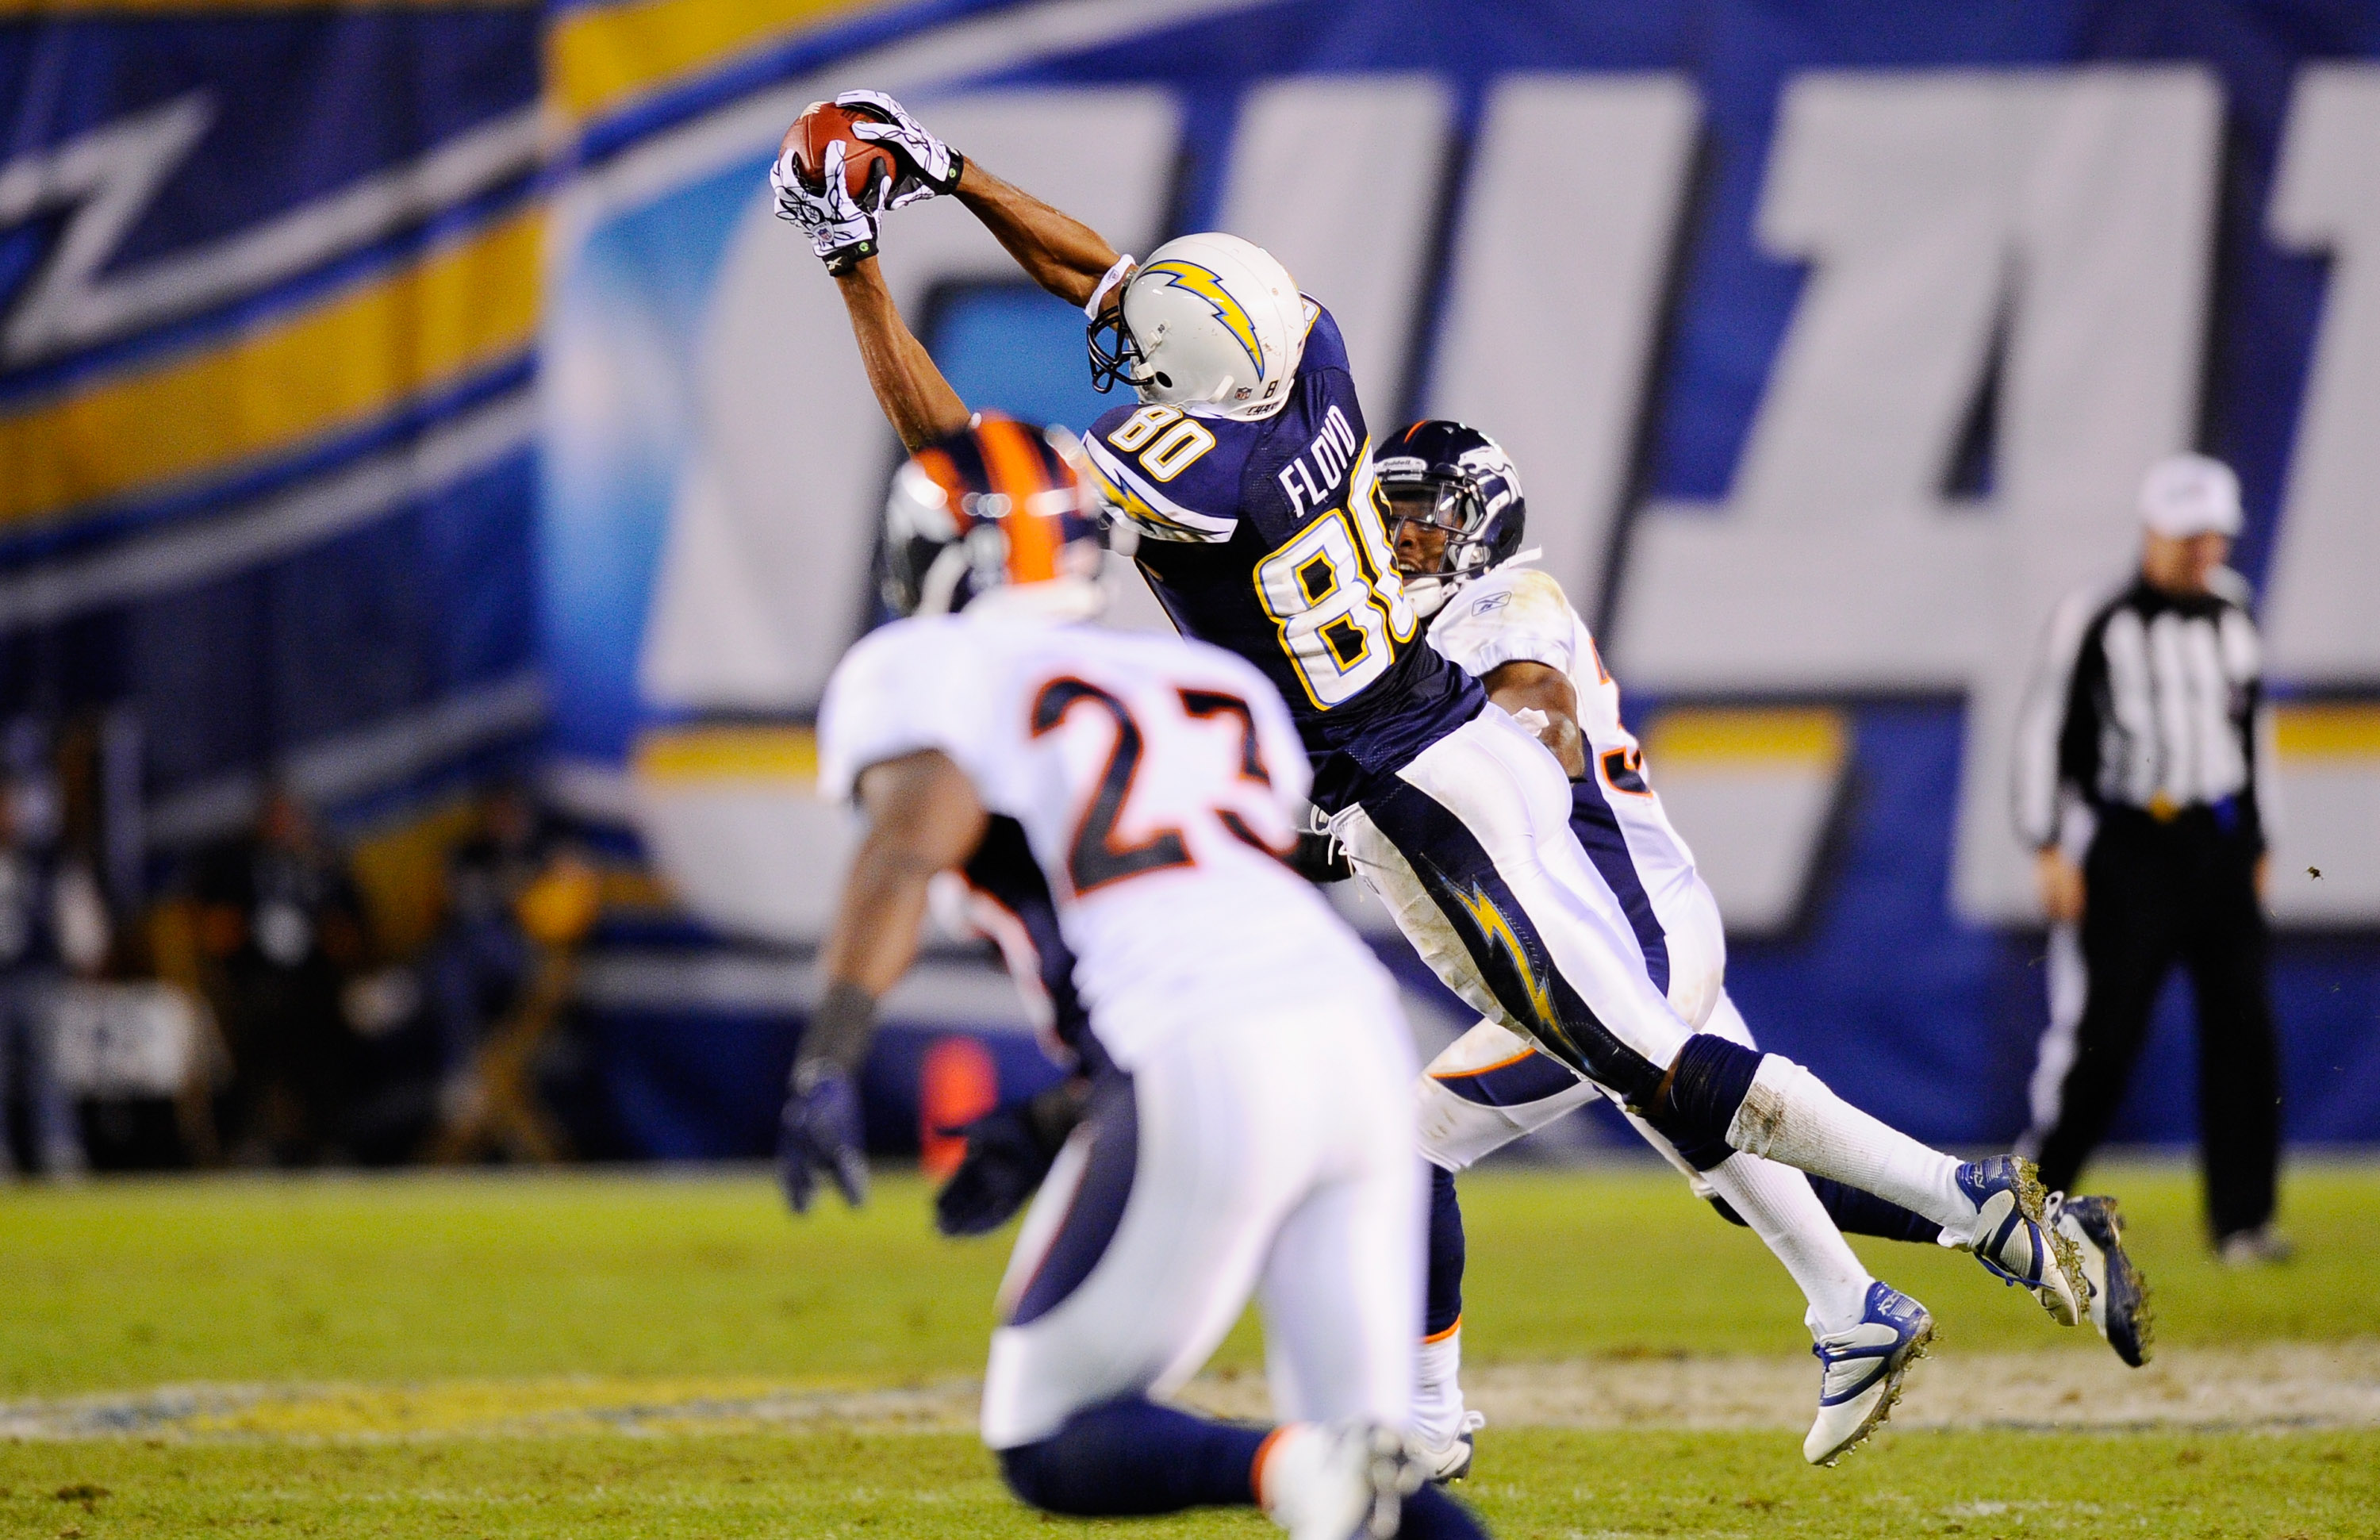 SAN DIEGO - NOVEMBER 22:  Malcolm Floyd #80 of the San Diego Chargers catches an 18-yard pass against the Denver Broncos at Qualcomm Stadium on November 22, 2010 in San Diego, California.  Chargers defeated the Broncos, 35-14. (Photo by Kevork Djansezian/